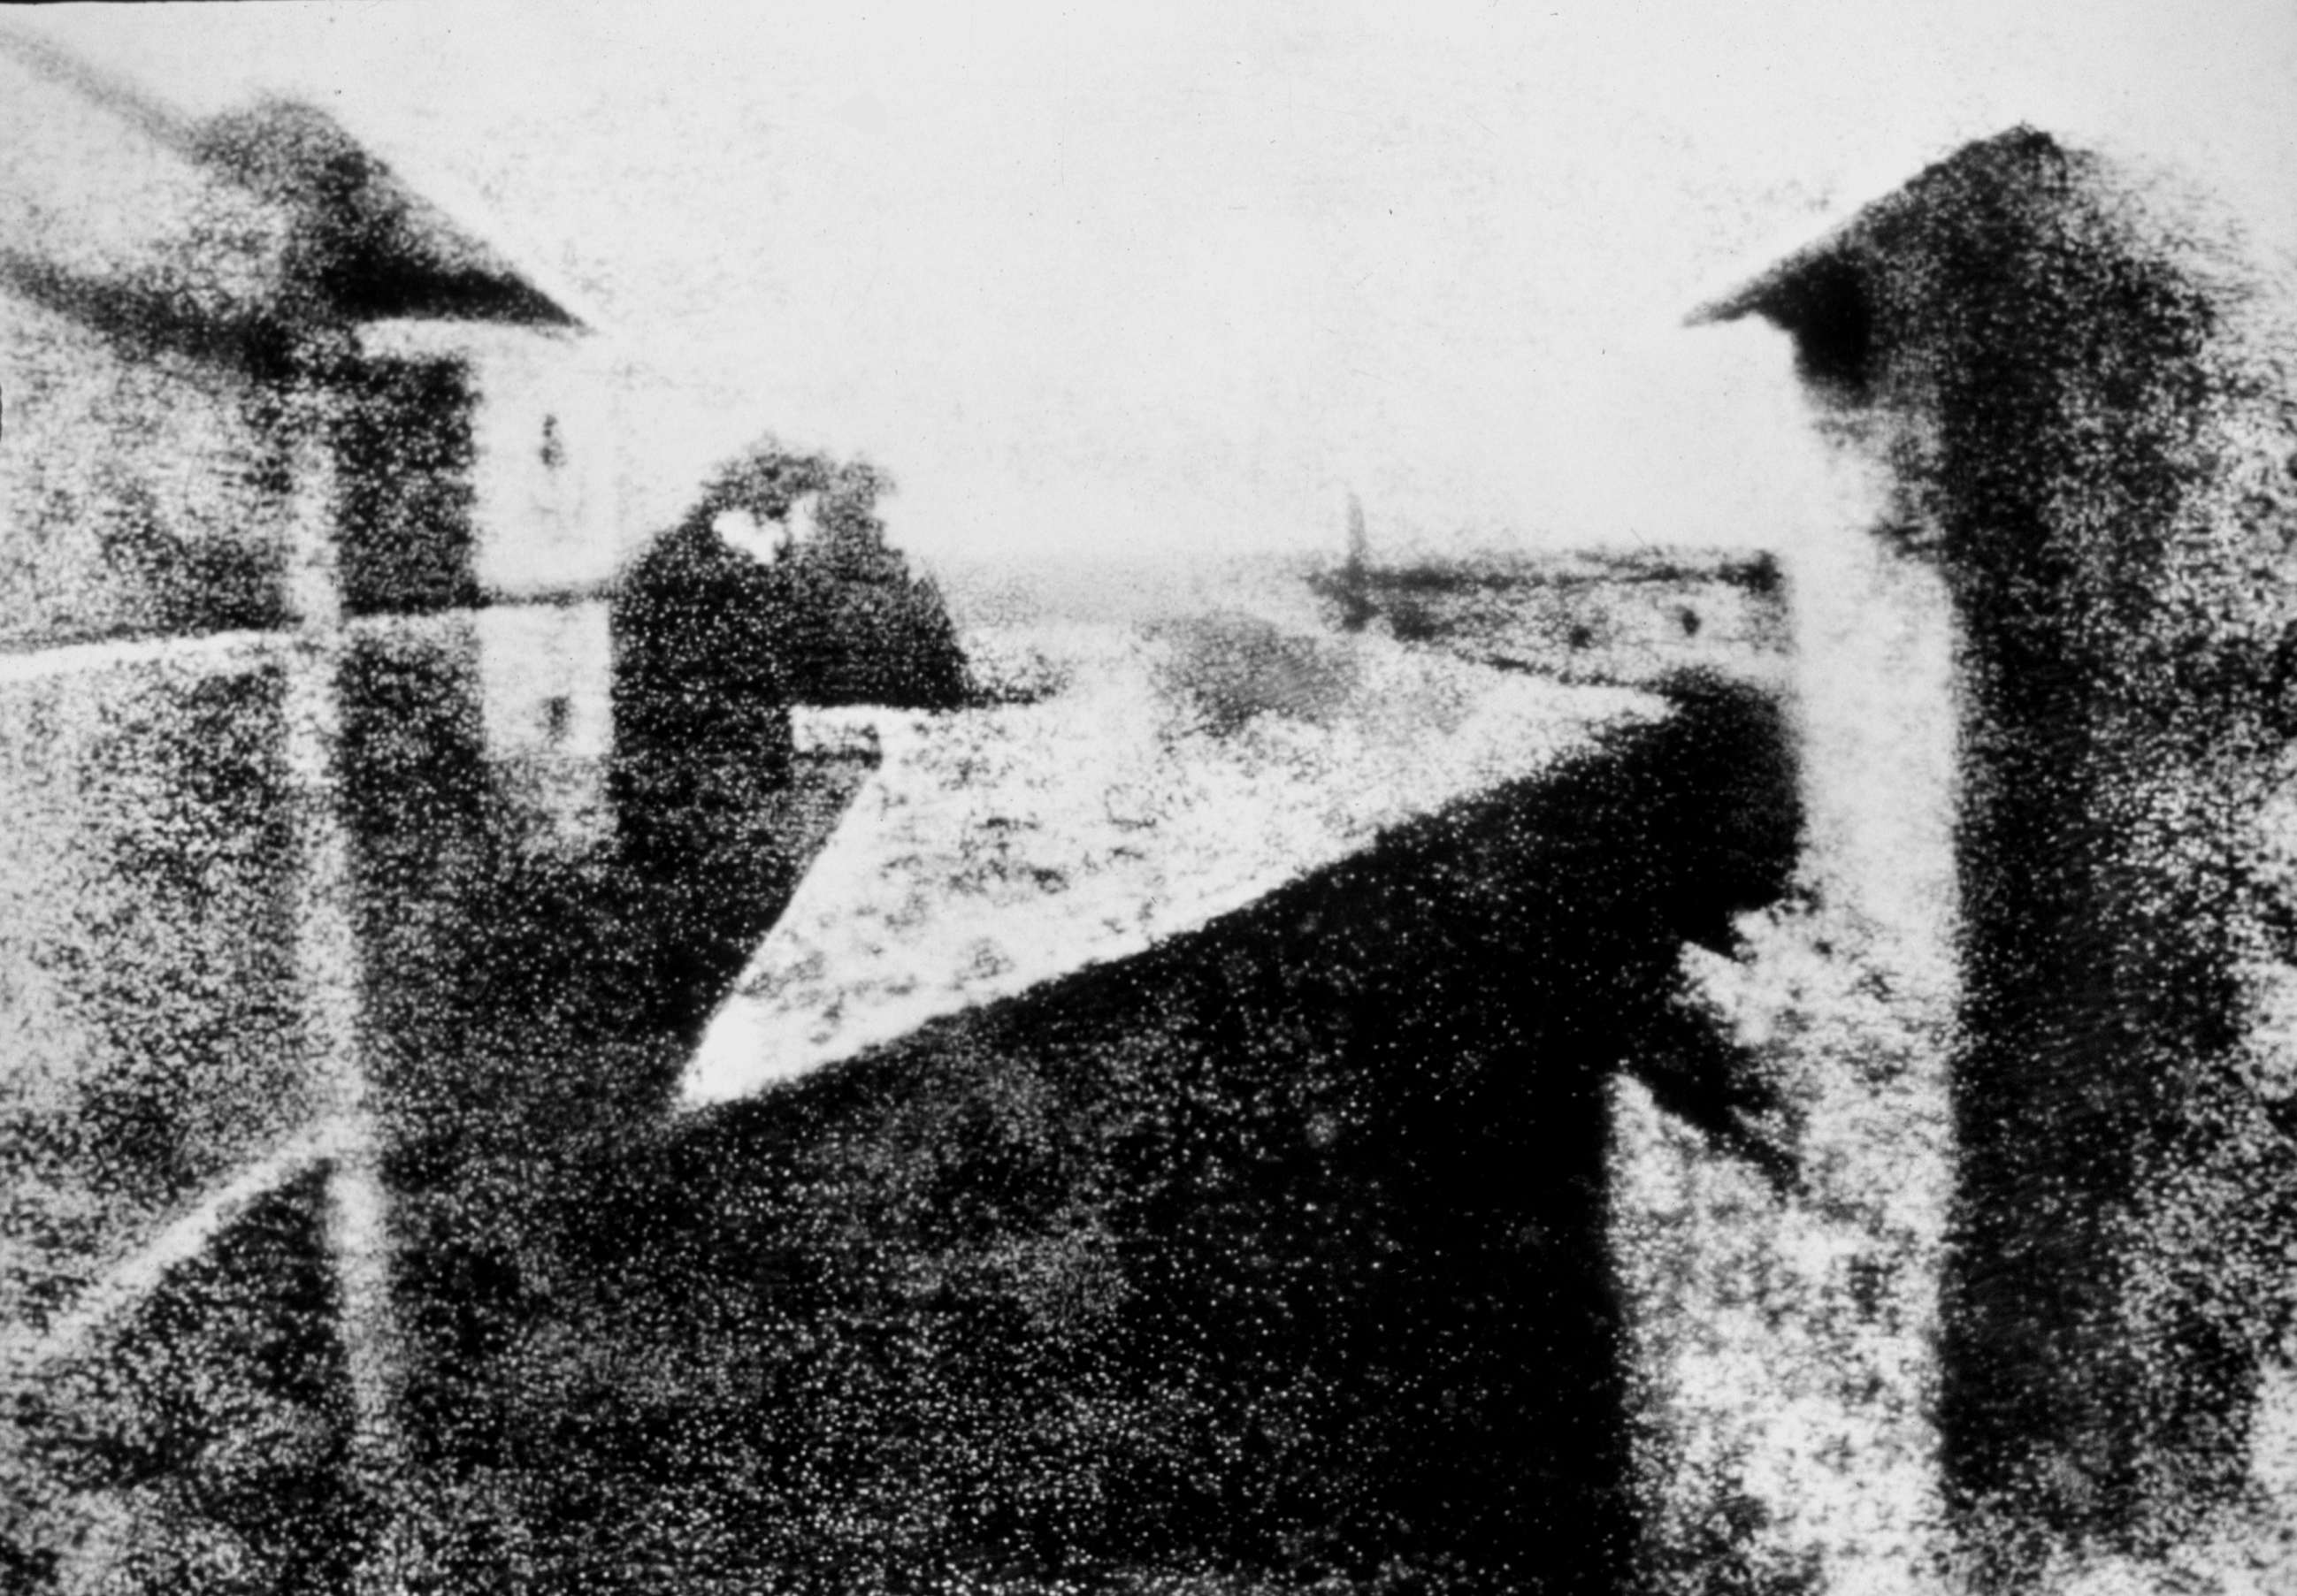 View from the window at le gras 1826 or 1827 the earliest surviving camera photograph